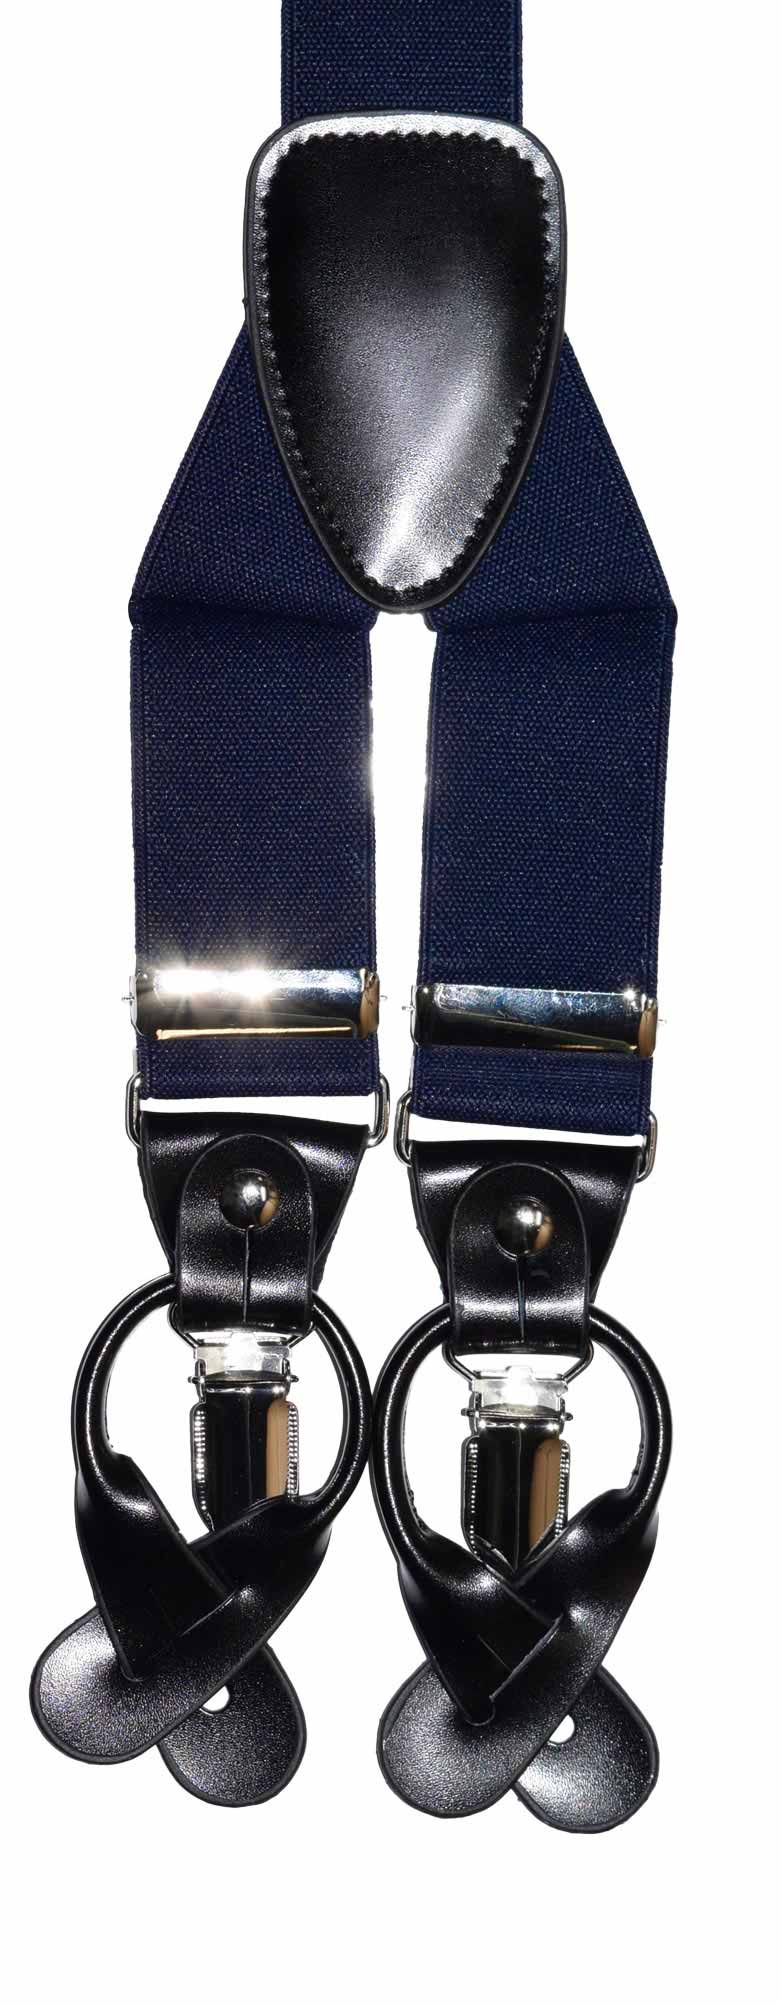 Uses either the clip ends or suspender buttons!